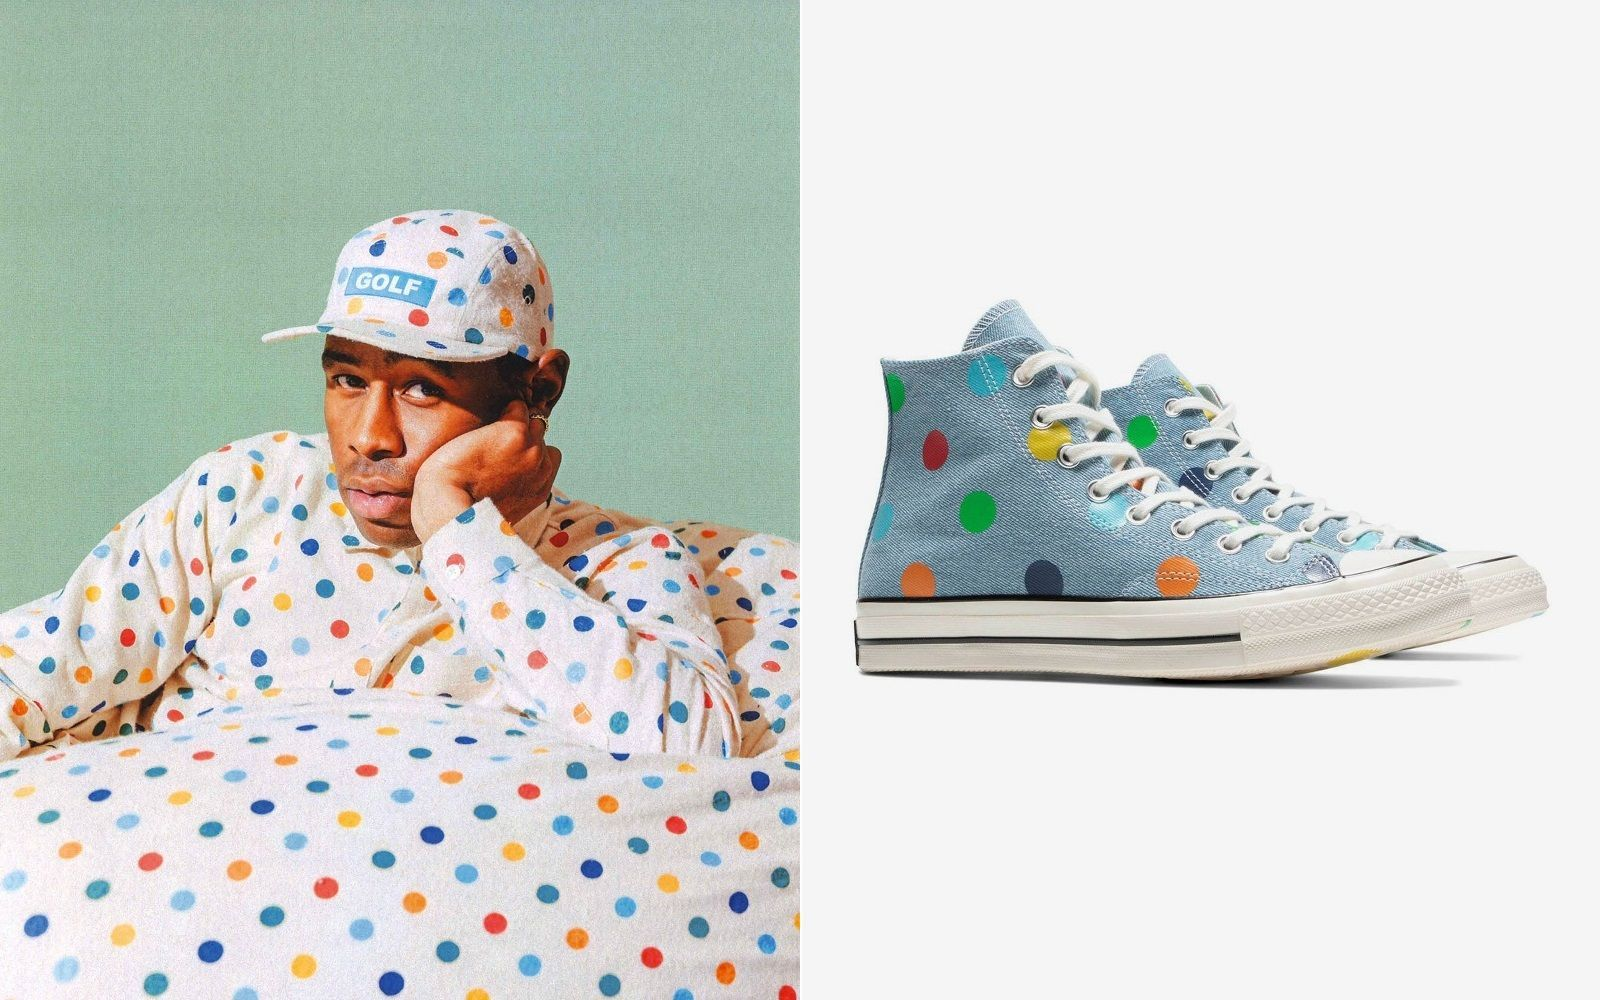 Rising Fashion Brands 2021: Golf Wang